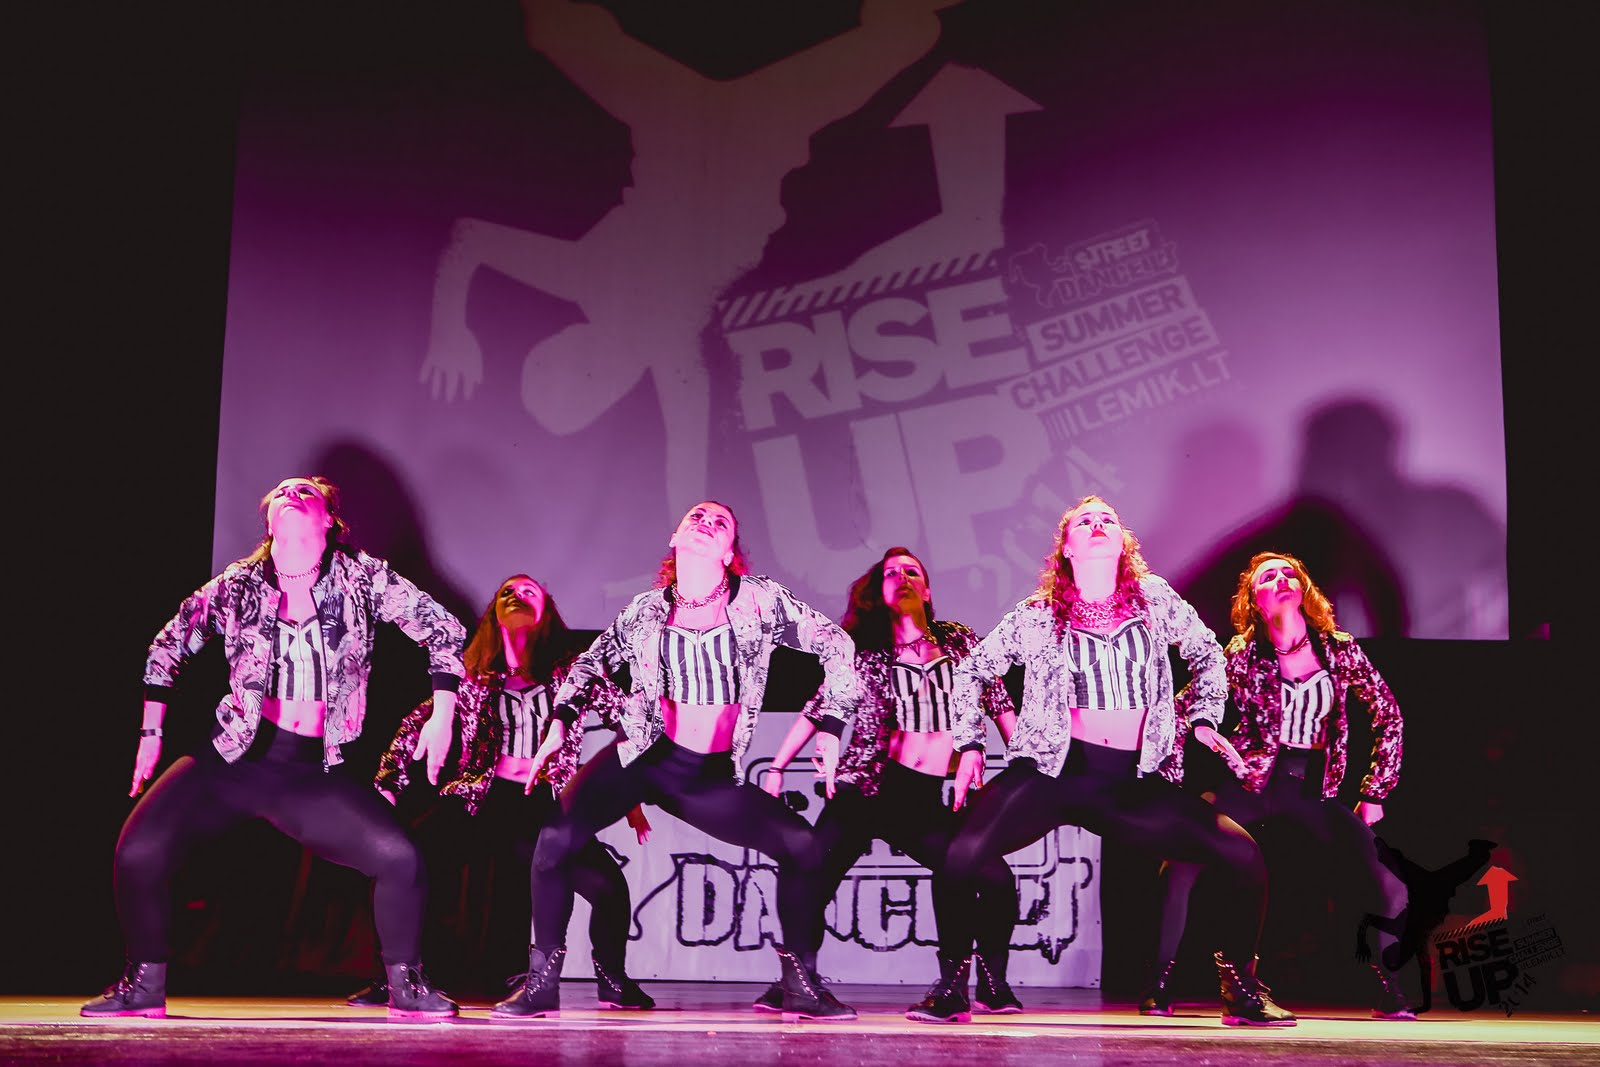 SKILLZ at RISEUP 2014 - _MG_5303.jpg